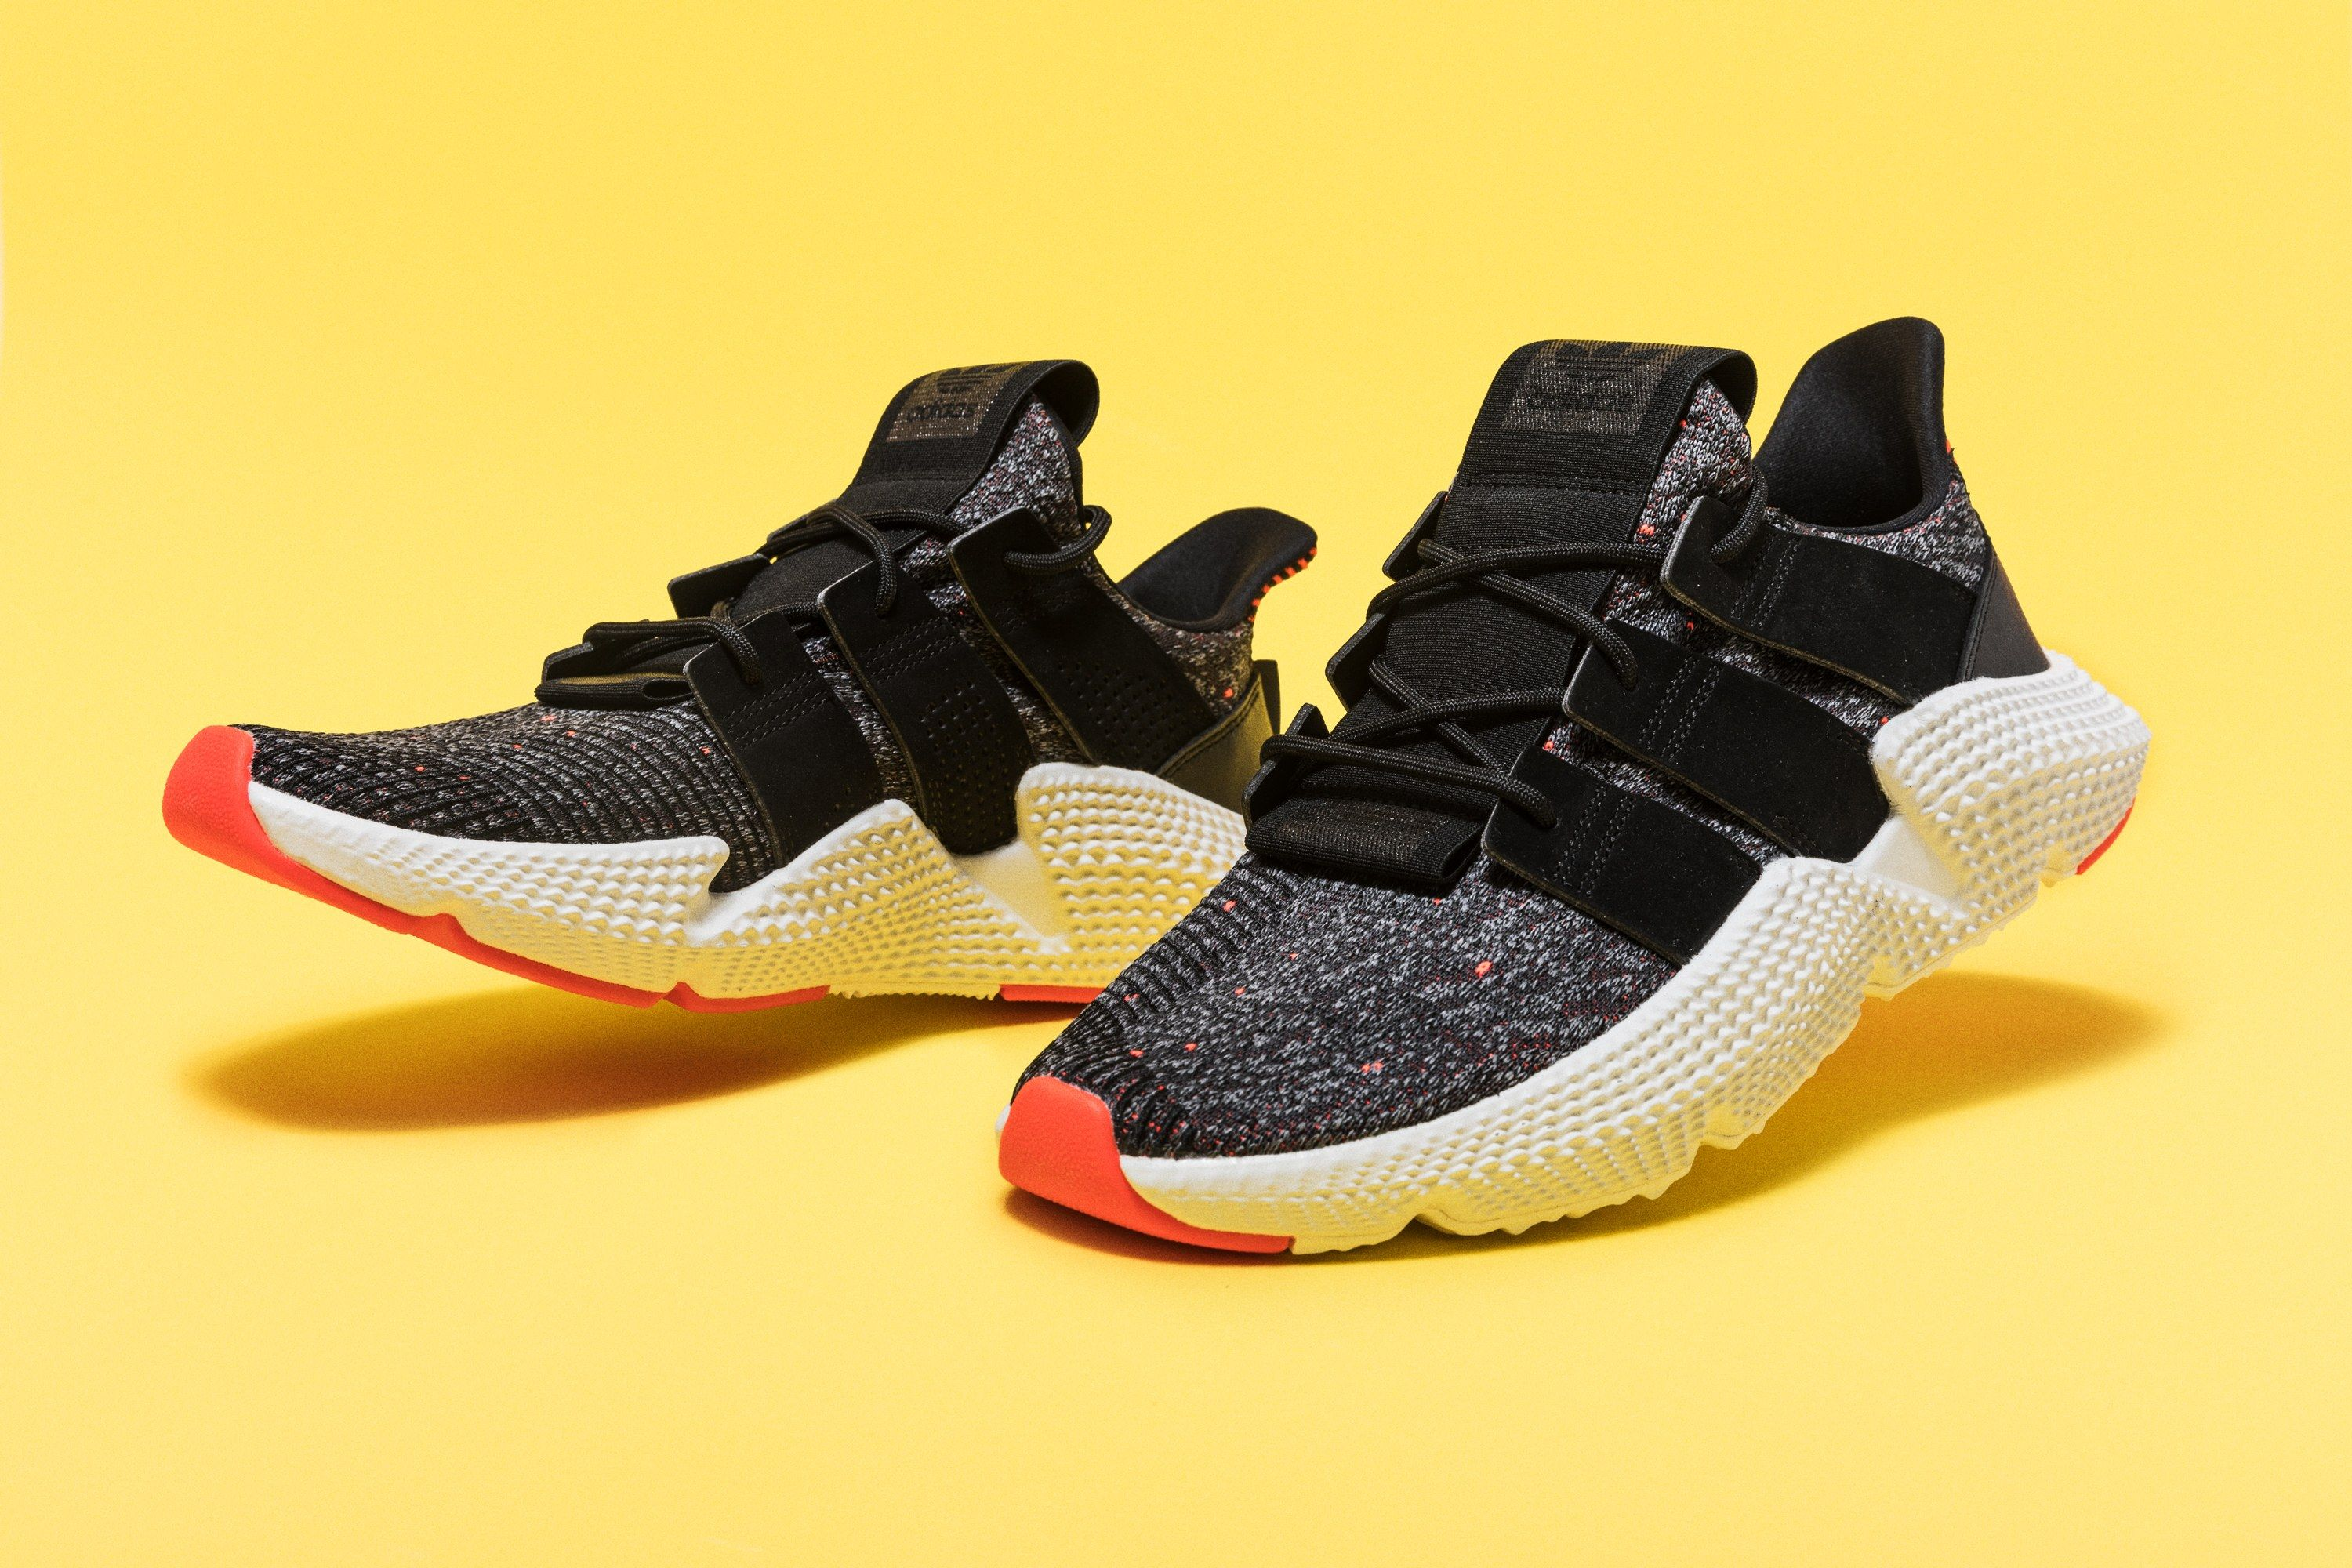 The Adidas Prophere Is The Latest Hit From the Three Stripes The Adidas  Prophere sneakers feature